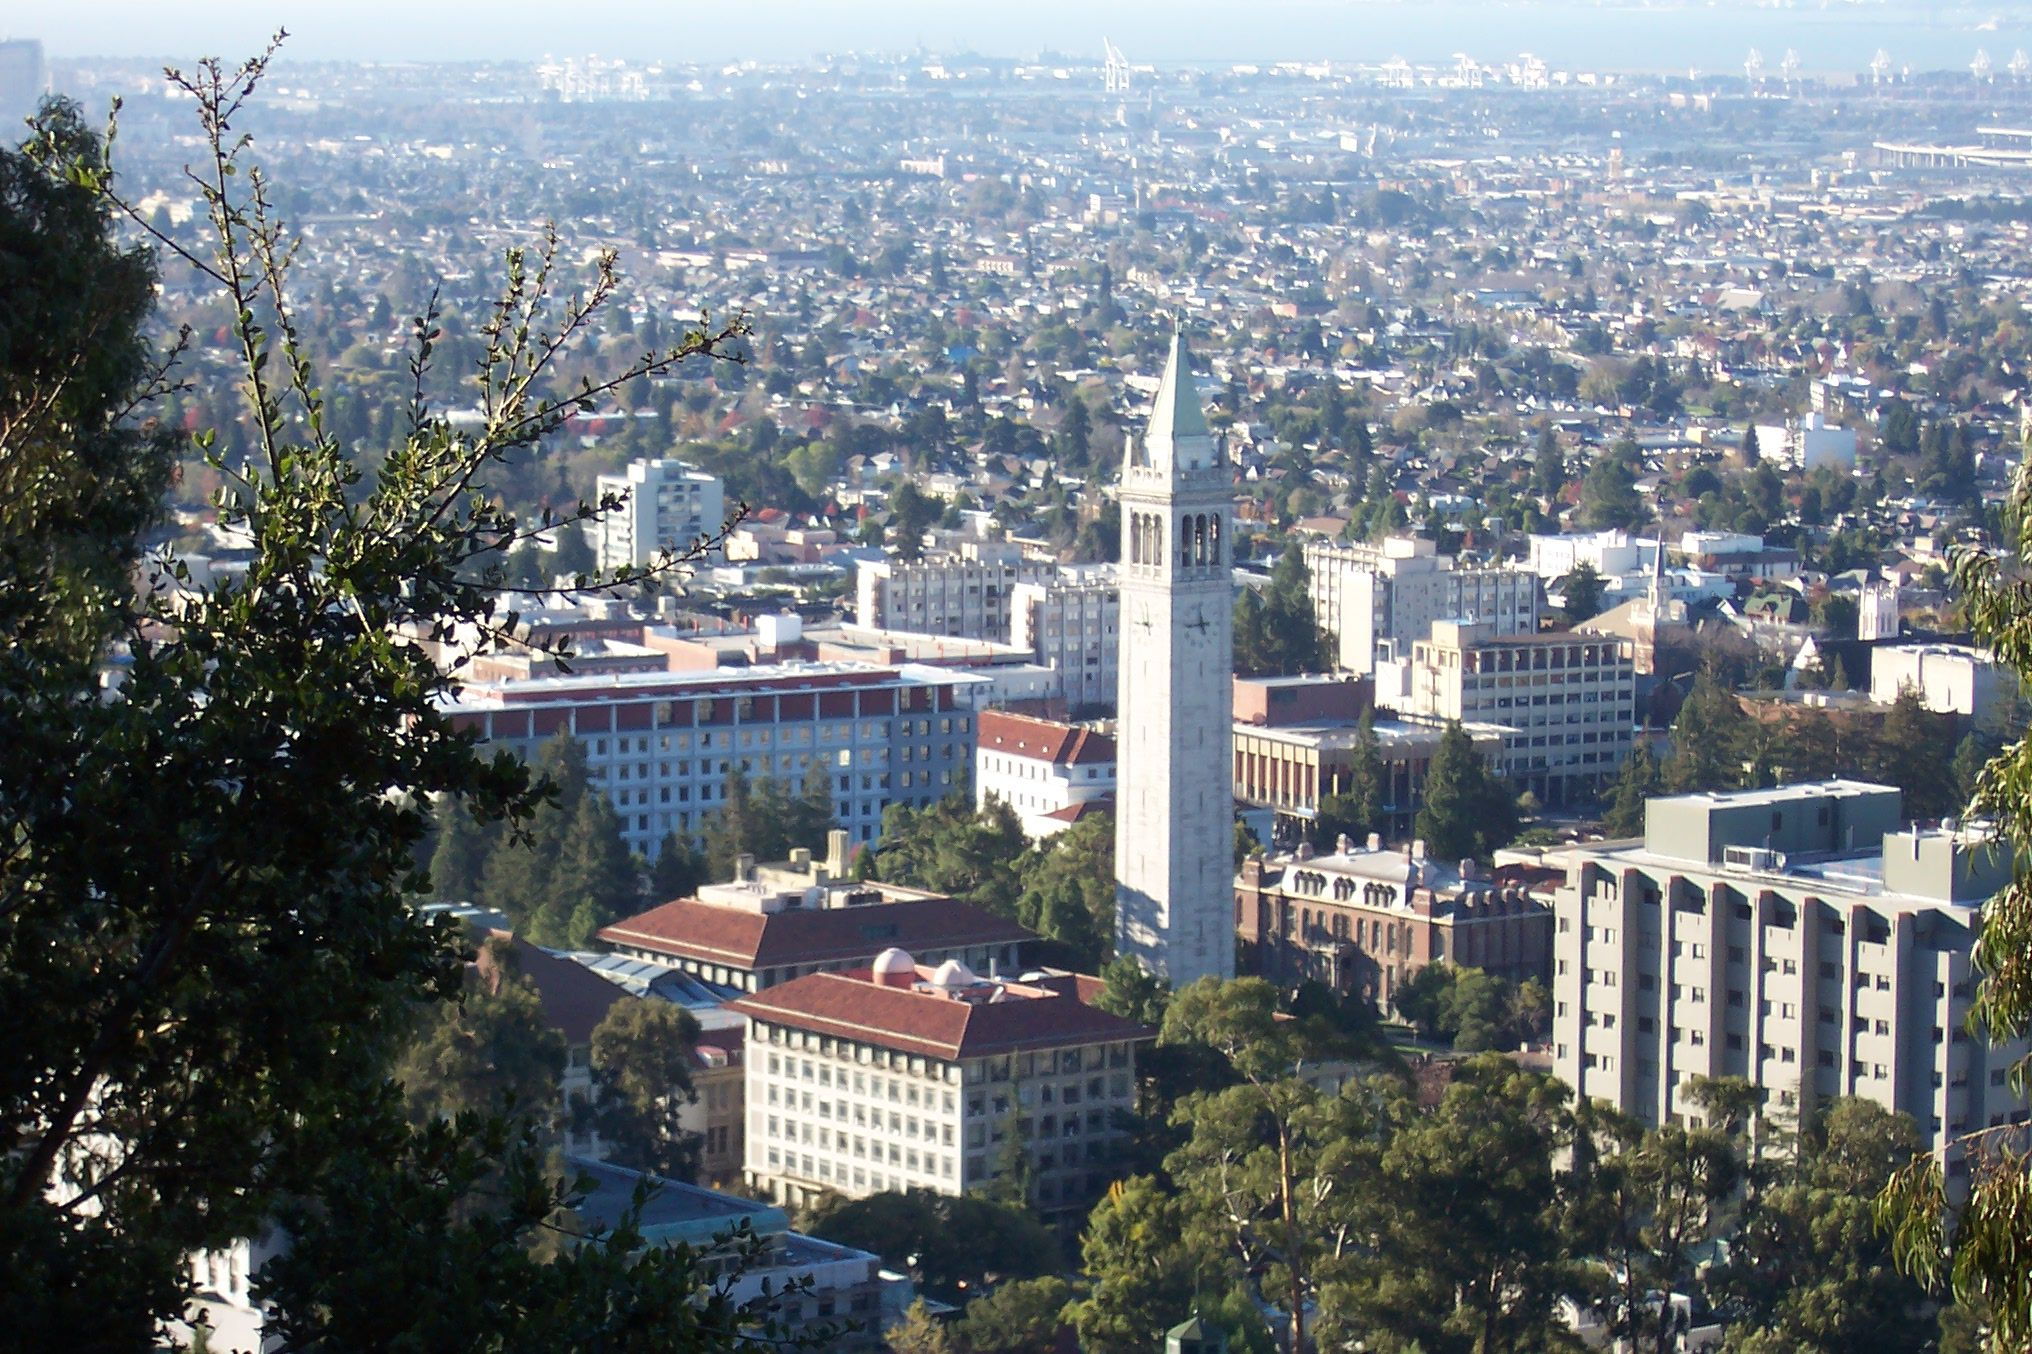 Overview of the University of California, Berkeley campus from the Berkeley Lab, from up the hills and south-westward. California, USA. Wikimedia/ User Introvert